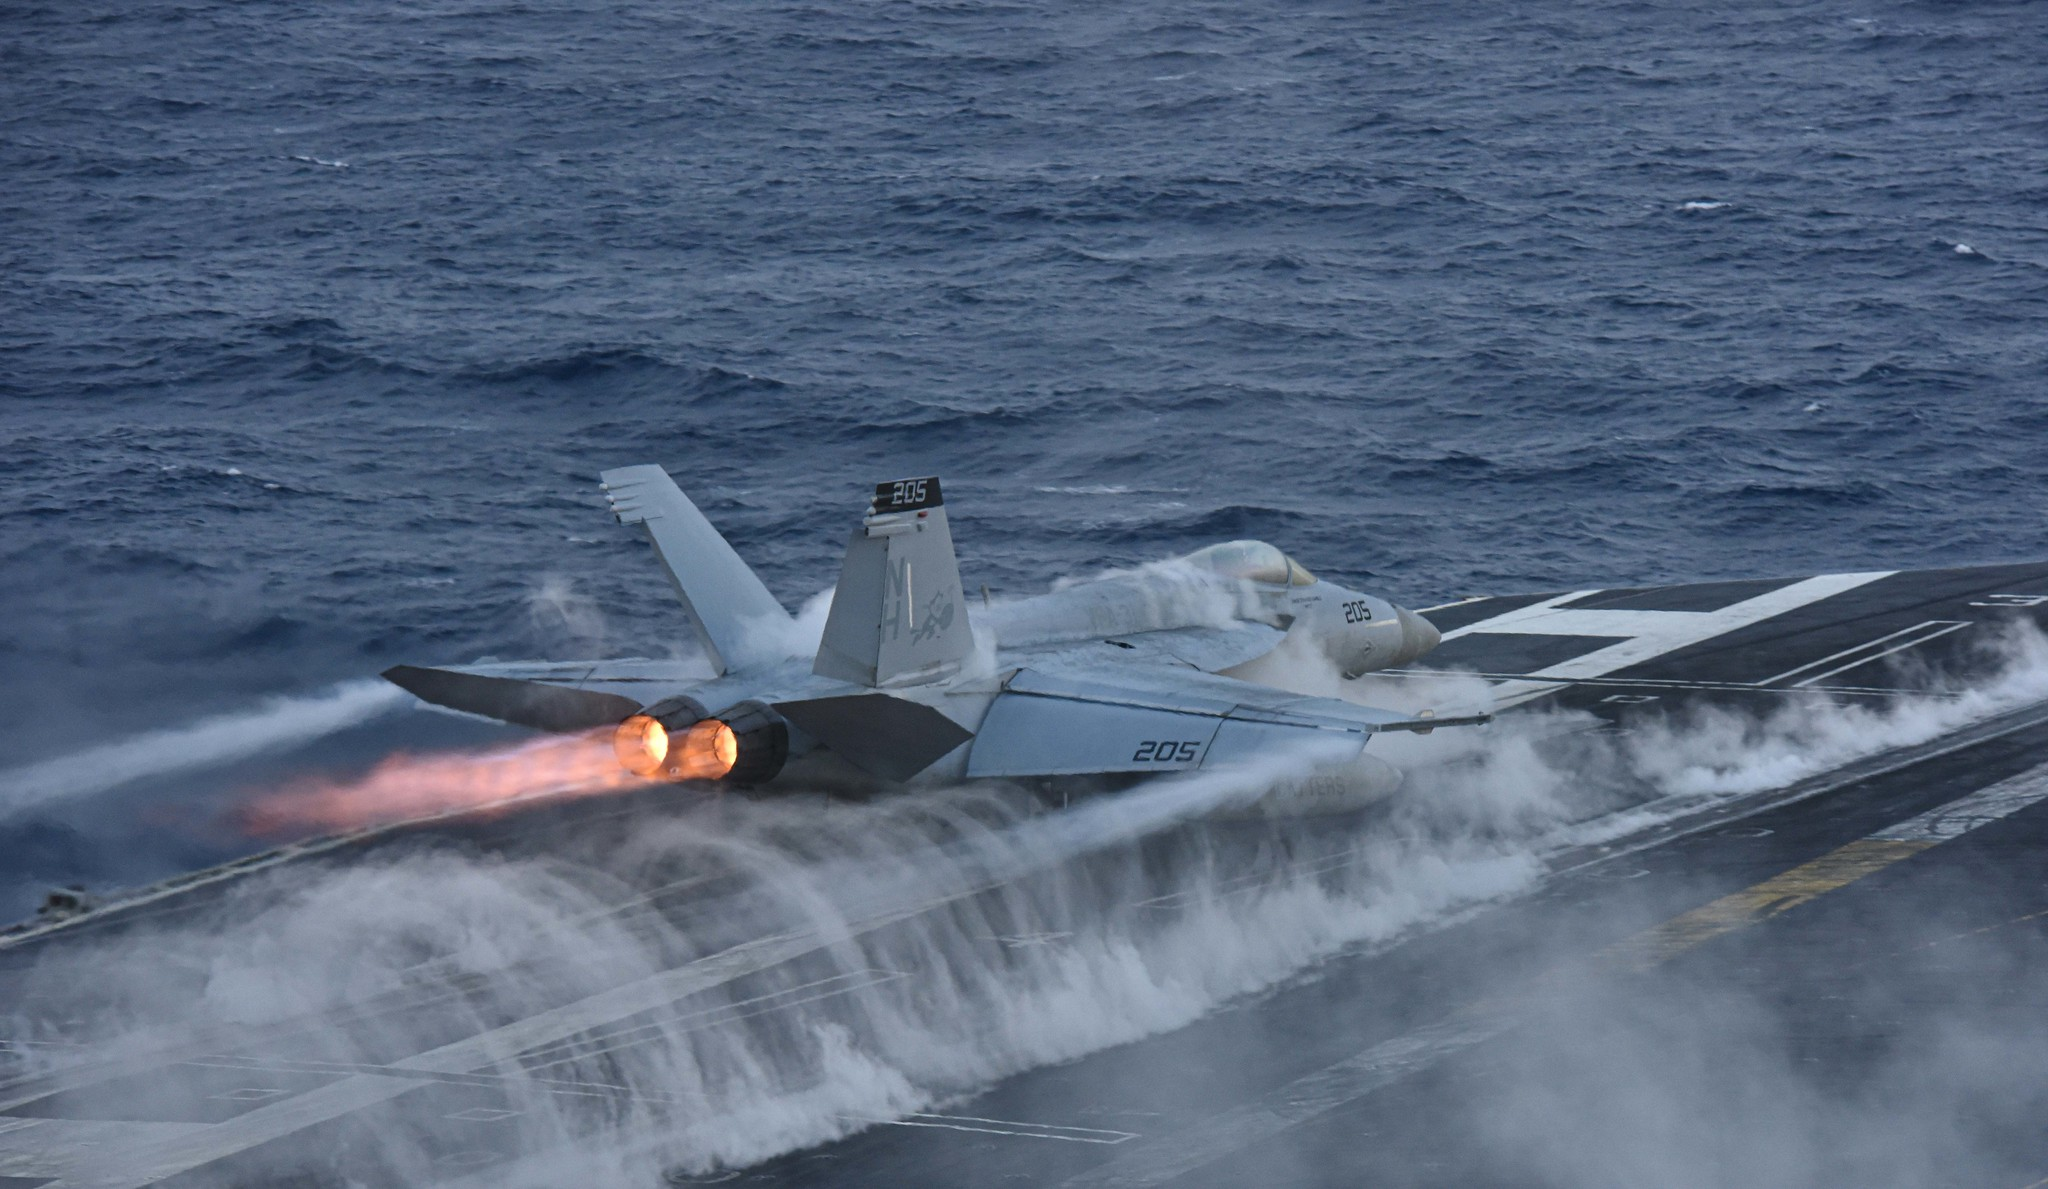 An F/A-18E Super Hornet launches from the flight deck of the aircraft carrier USS Theodore Roosevelt (CVN 71) on Dec. 12, 2019, in the Pacific Ocean. (Mass Communication Specialist 2nd Class Pyoung K. Yi/Navy)